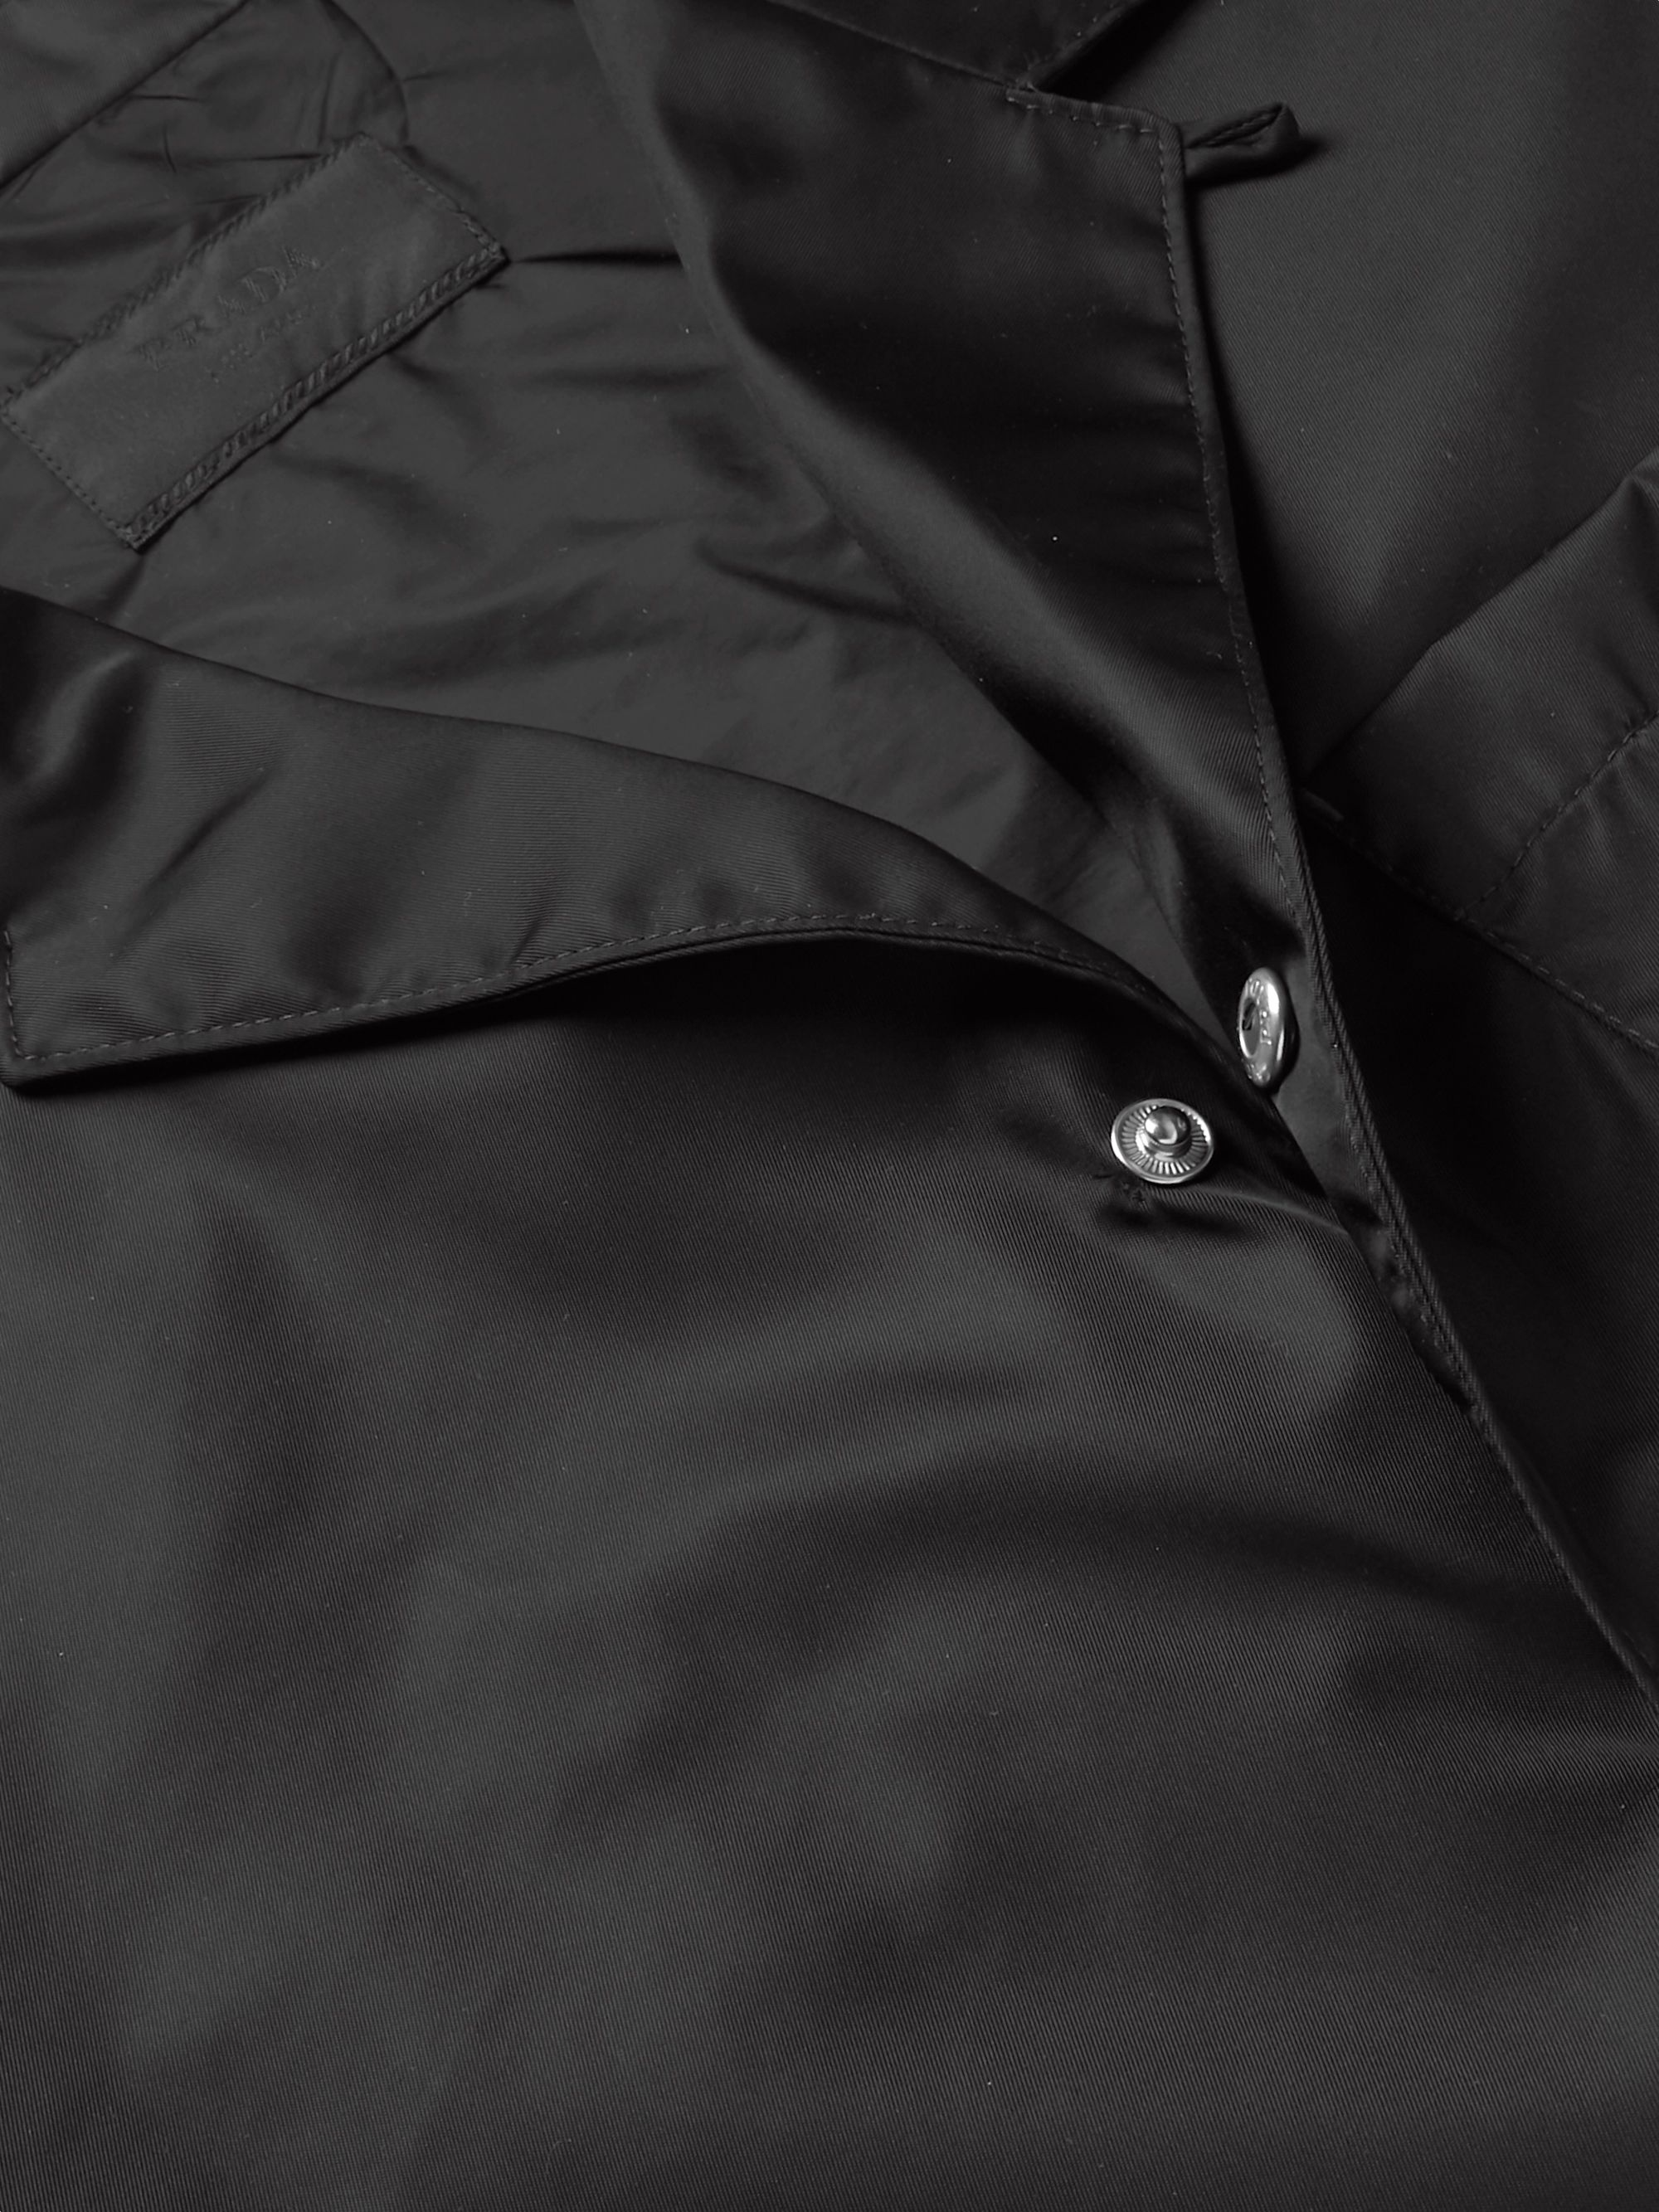 Prada Camp-Collar Logo-Appliquéd Nylon Overshirt